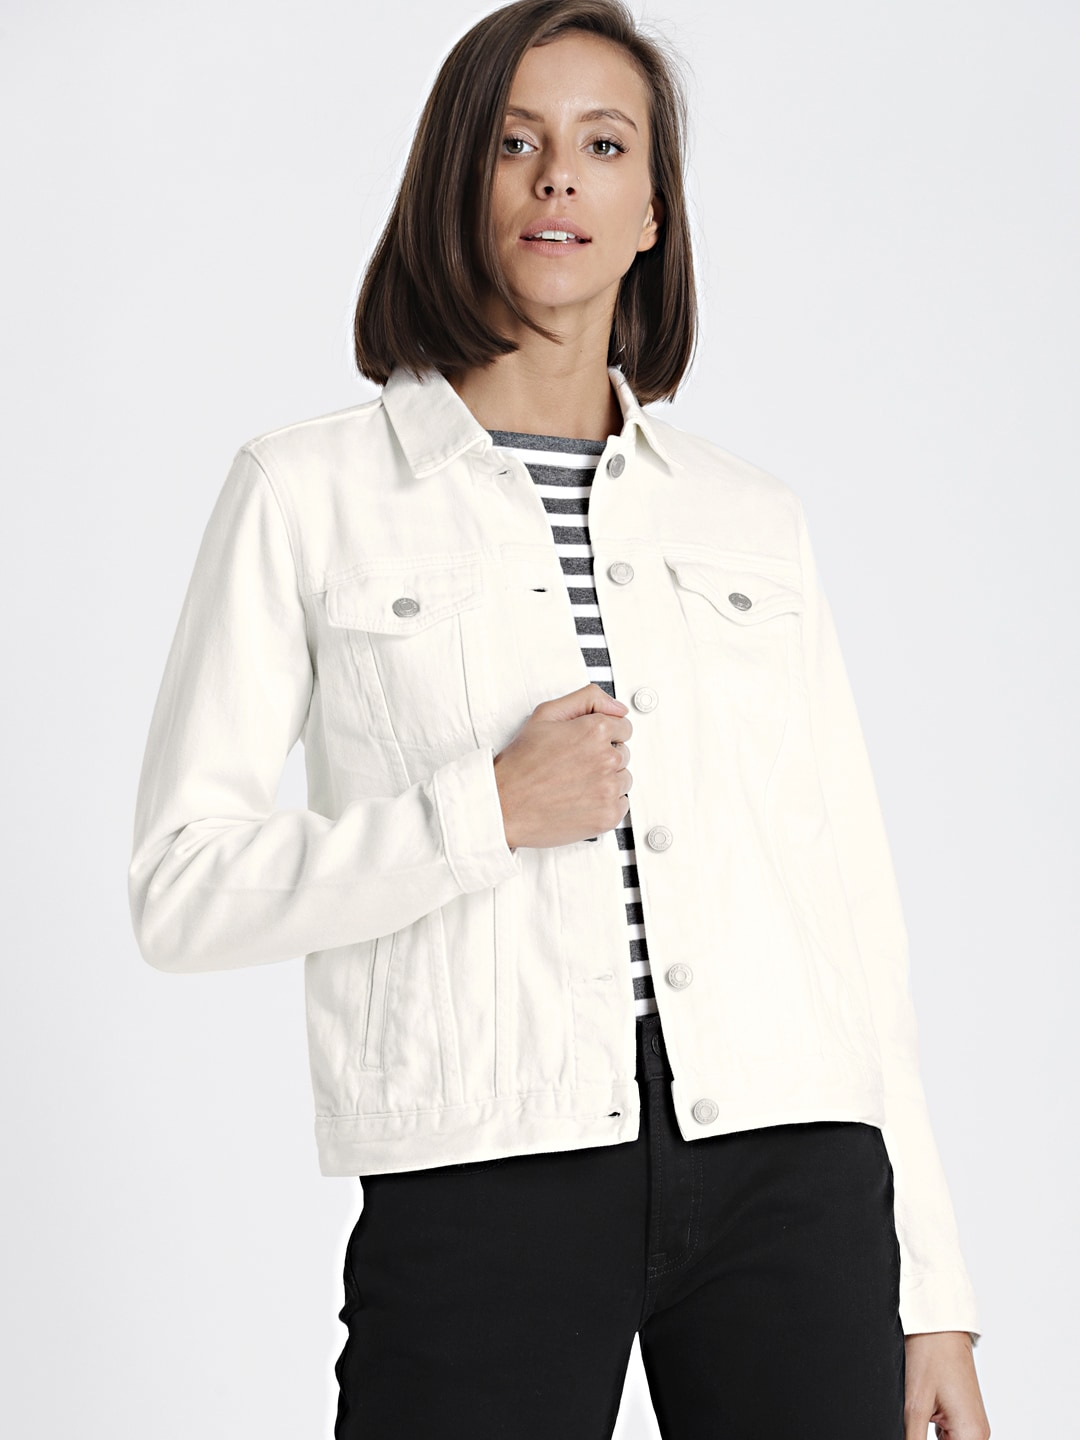 445f8a7022d Jackets for Women - Buy Casual Leather Jackets for Women Online